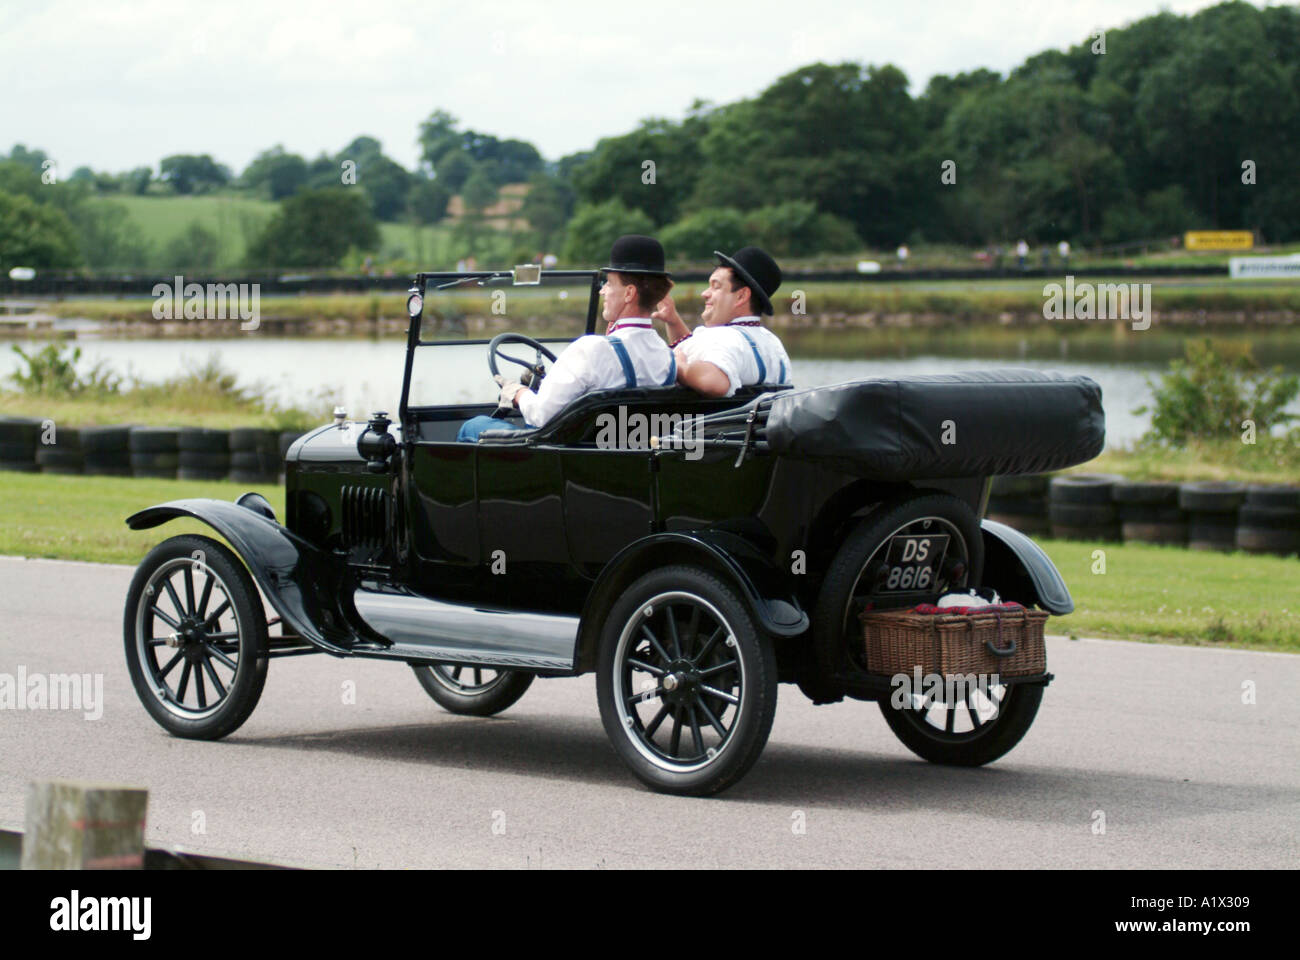 laurel and hardy look alike driving a classic ford car comedy duo actor film black and white star - Stock Image